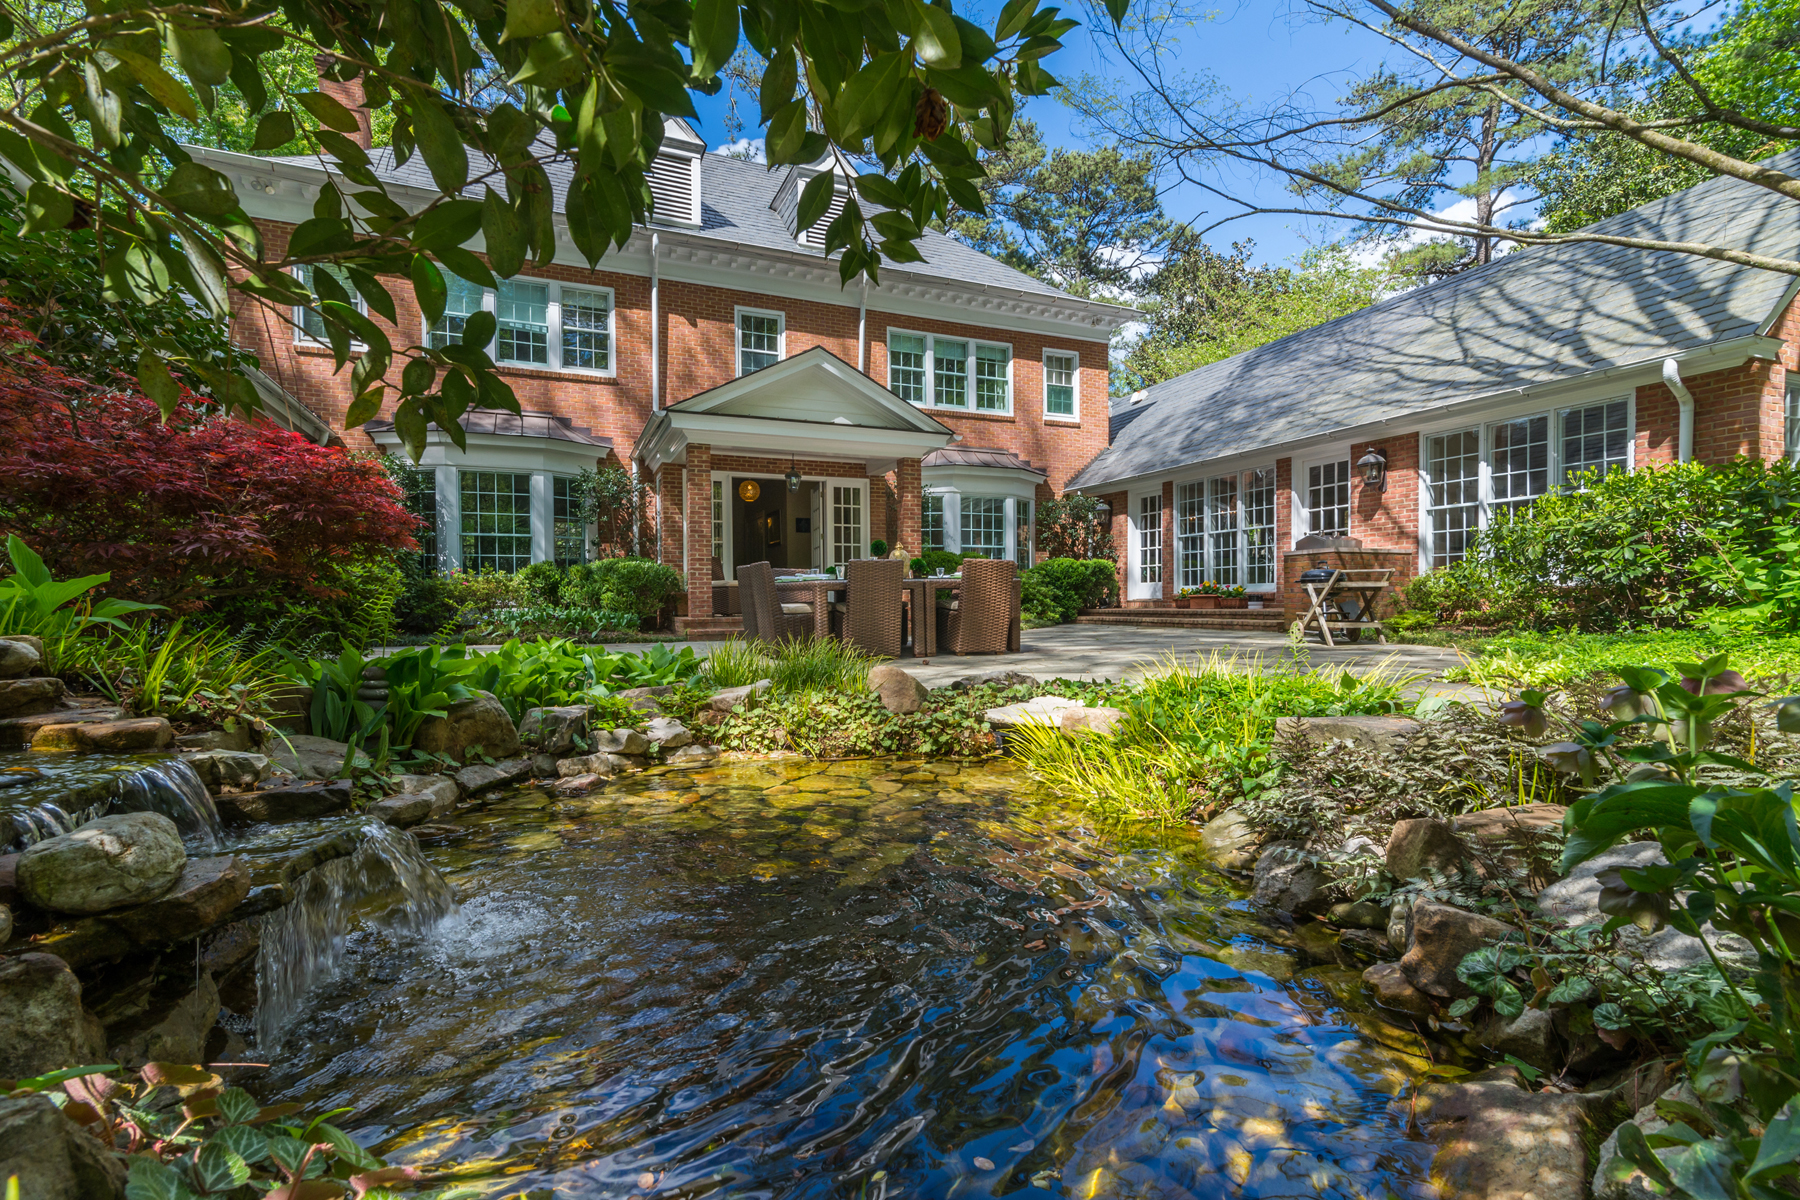 Частный односемейный дом для того Продажа на A Private And Unique Oasis In The Heart Of Buckhead 650 W Paces Ferry Road NW Buckhead, Atlanta, Джорджия, 30327 Соединенные Штаты